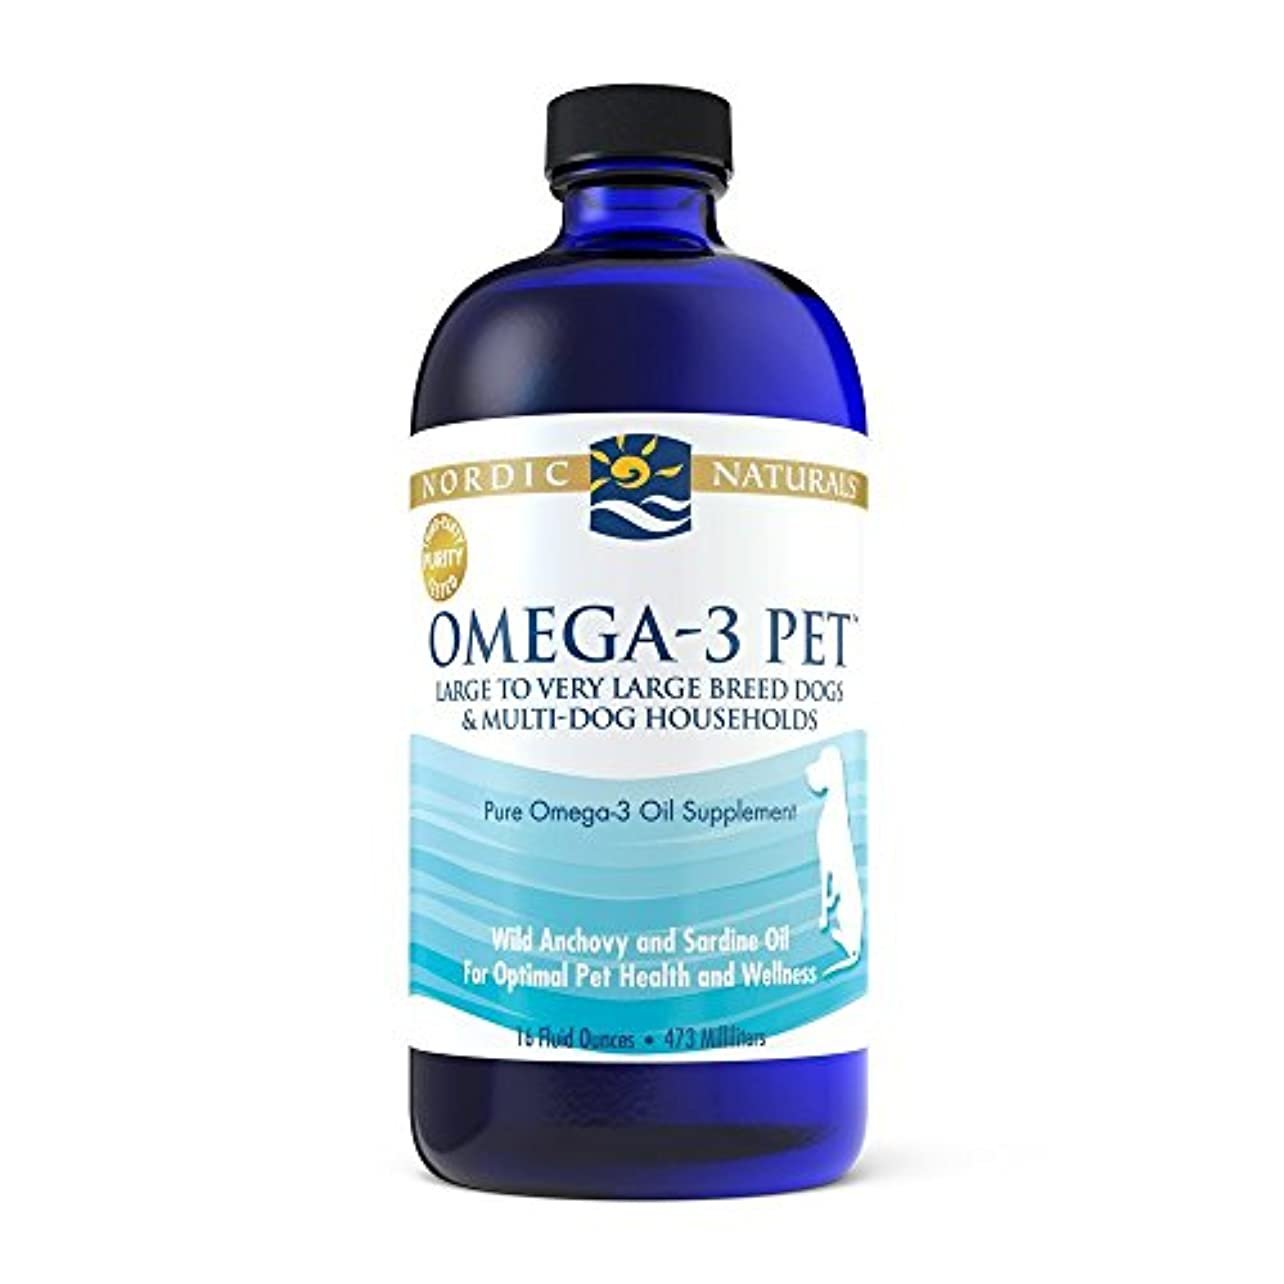 Nordic Naturals Fish Oil OMEGA-3 Essential Fatty Acid for Dogs + Cats 16 oz 海外直送品